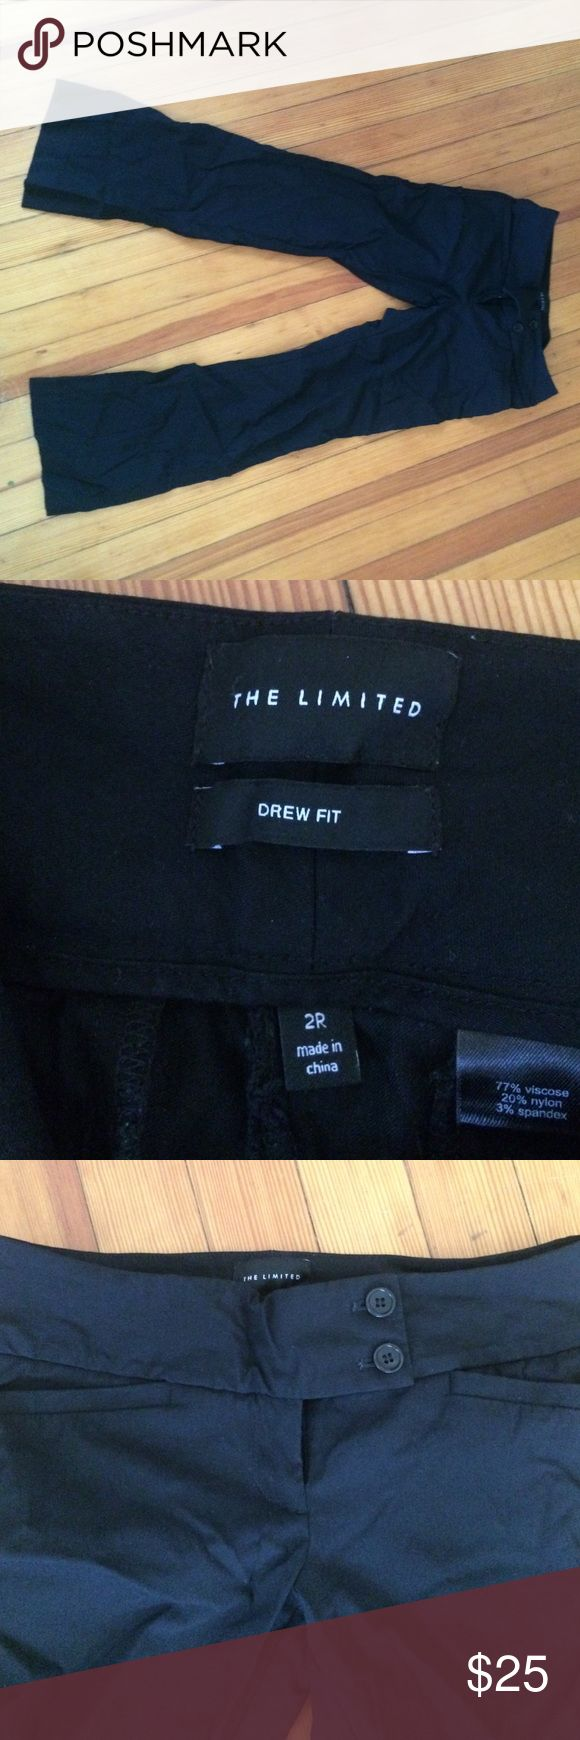 """Black drew crop Capri pants 14"""" waist 17"""" hips 27"""" inseam. Form fitting hip area and kick flare at the bottom. Heavy stretch fabric. Pics are wrinkled but otherwise perfect condition. Limited Pants Ankle & Cropped"""